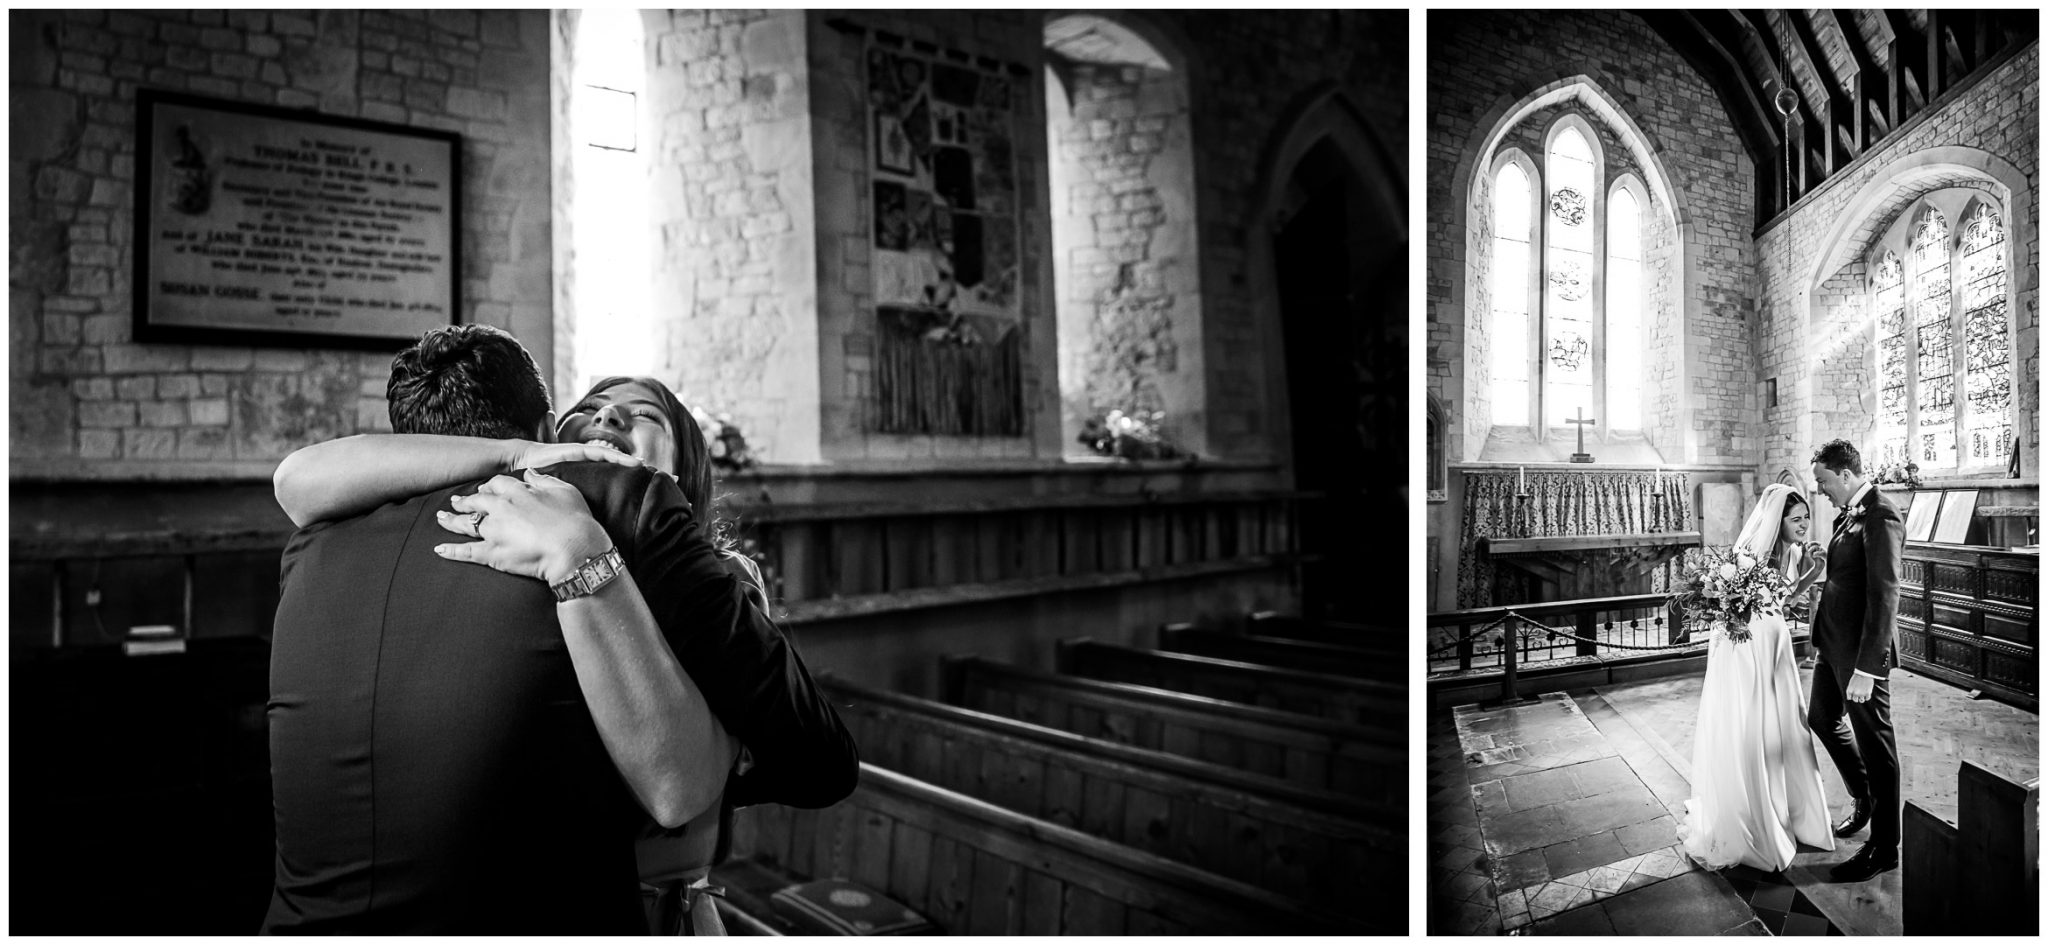 Black and white candid photography as the couple take a moment in the now-empty church